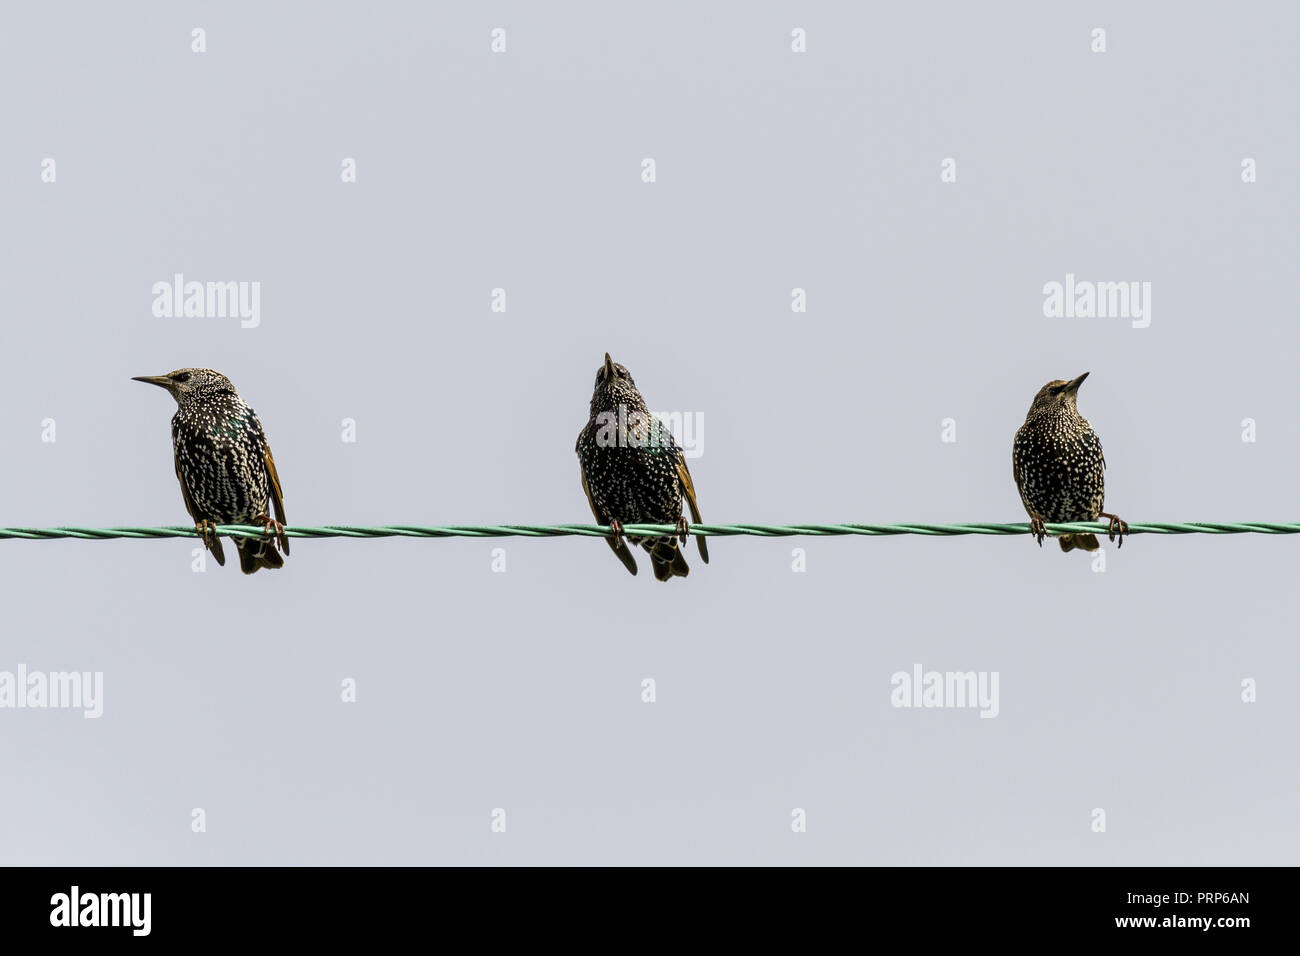 Three starlings in winter plumage with white speckled chests sitting on a wire, UK - Stock Image